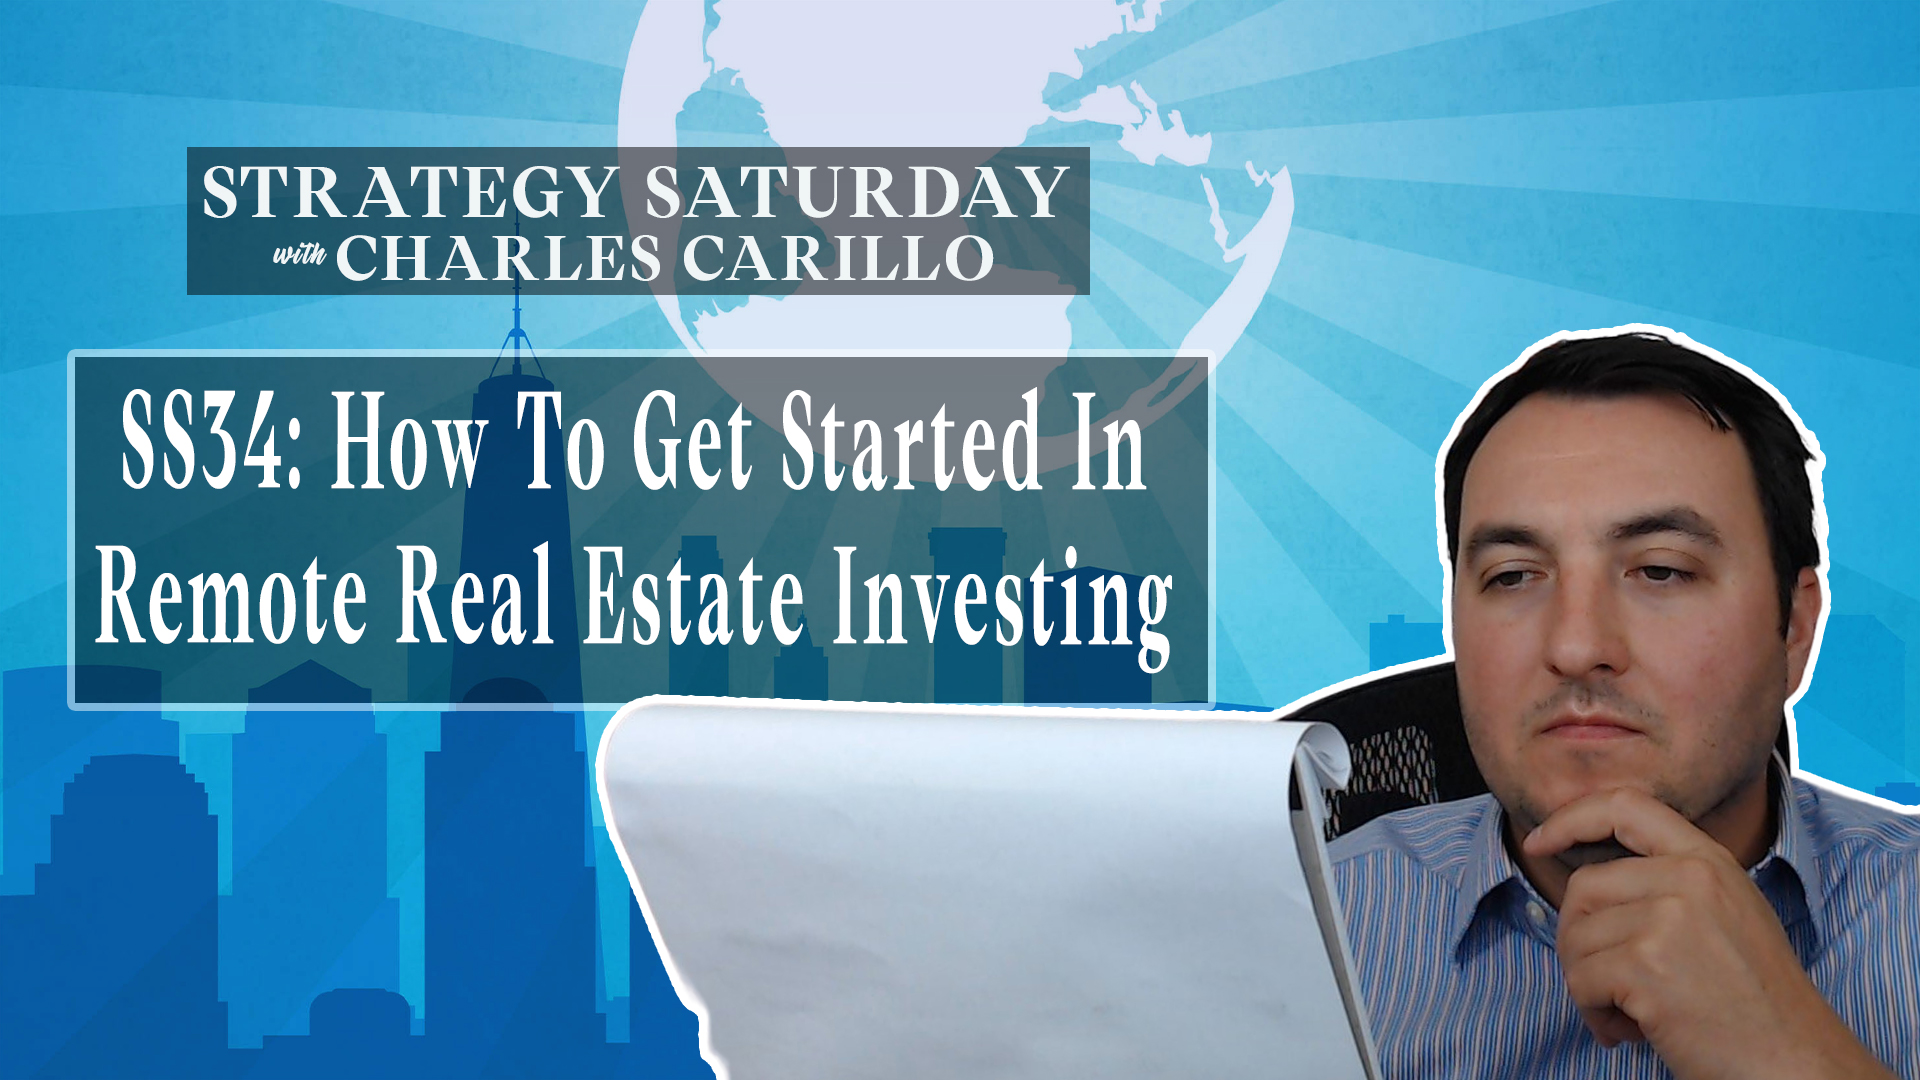 SS34: How To Get Started In Remote Real Estate Investing